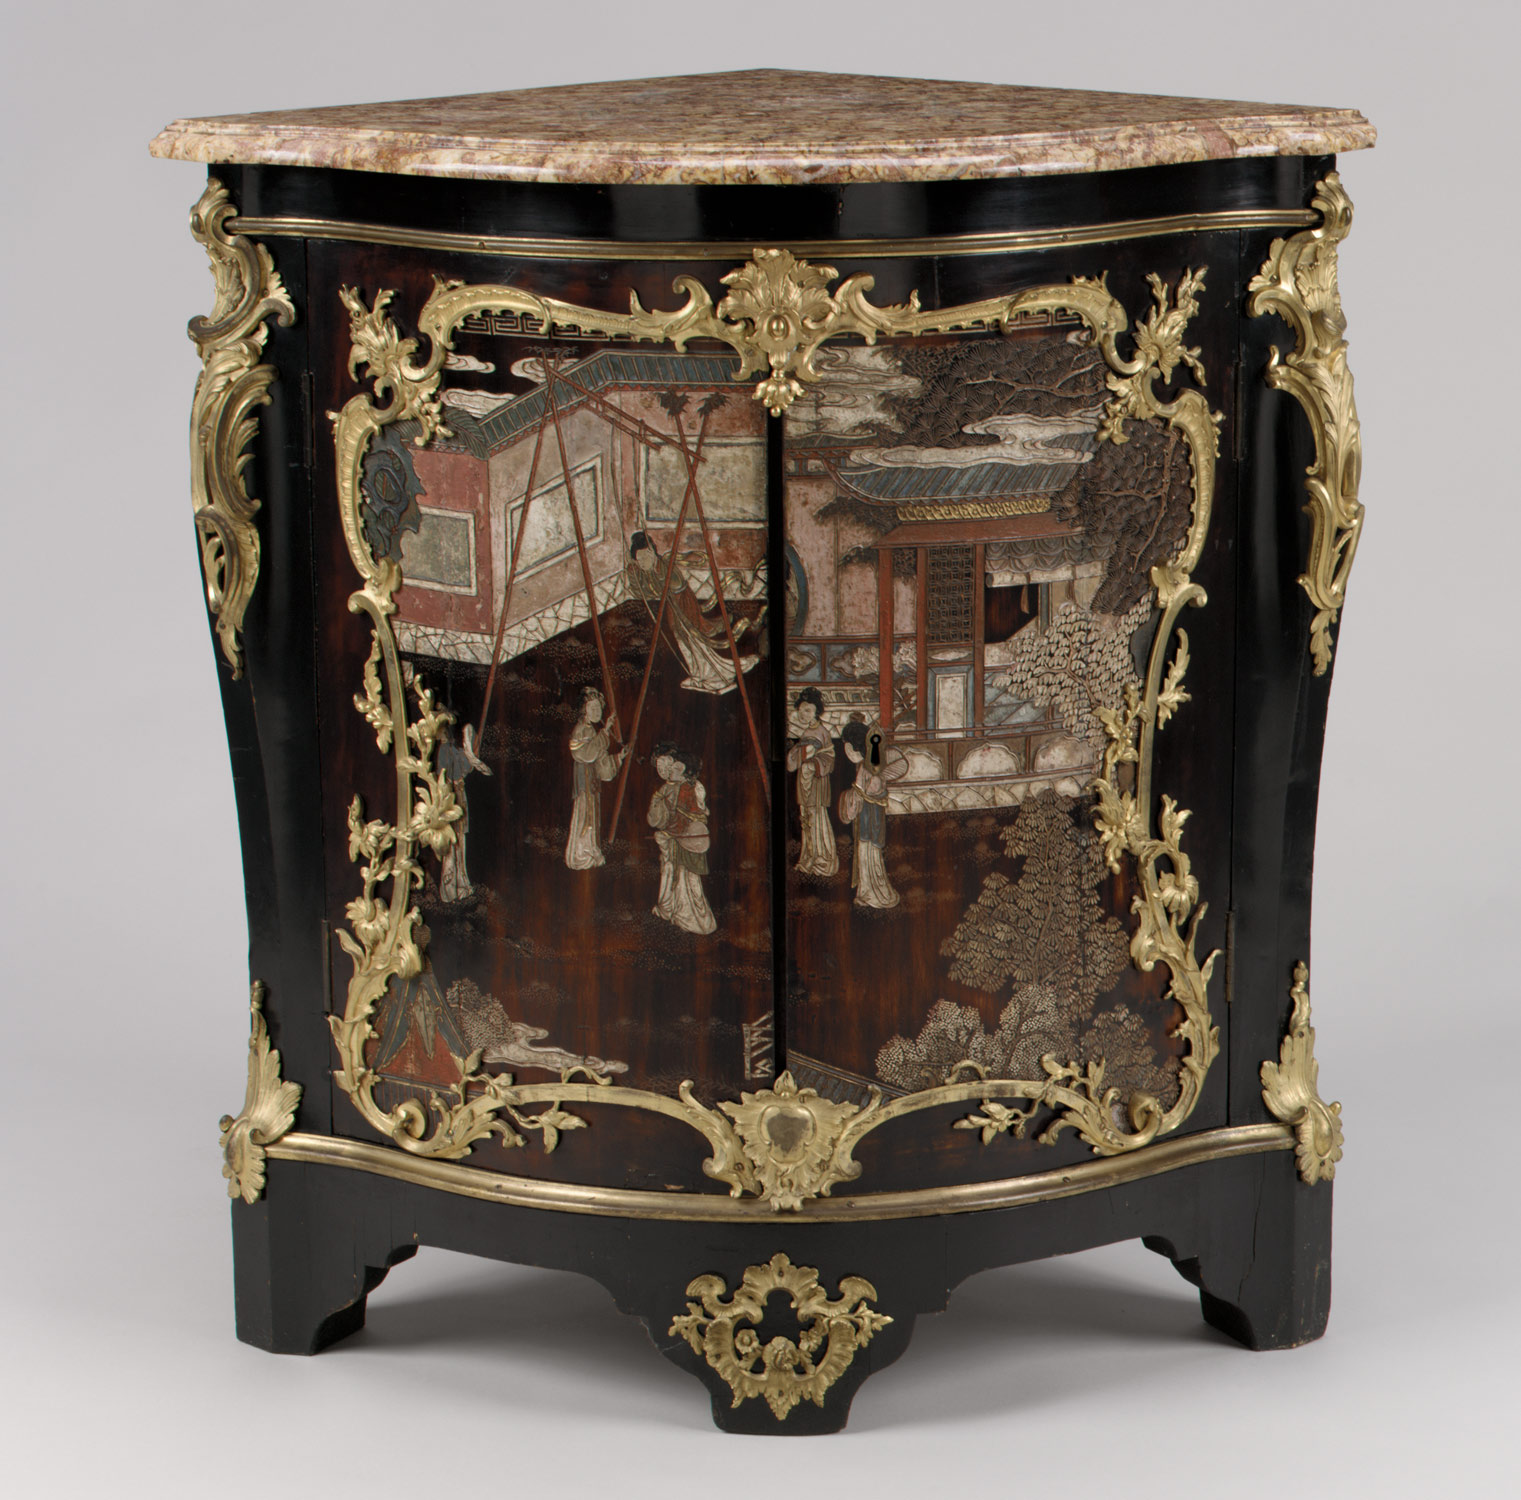 French Furniture in the Eighteenth Century: Case Furniture | Essay ...